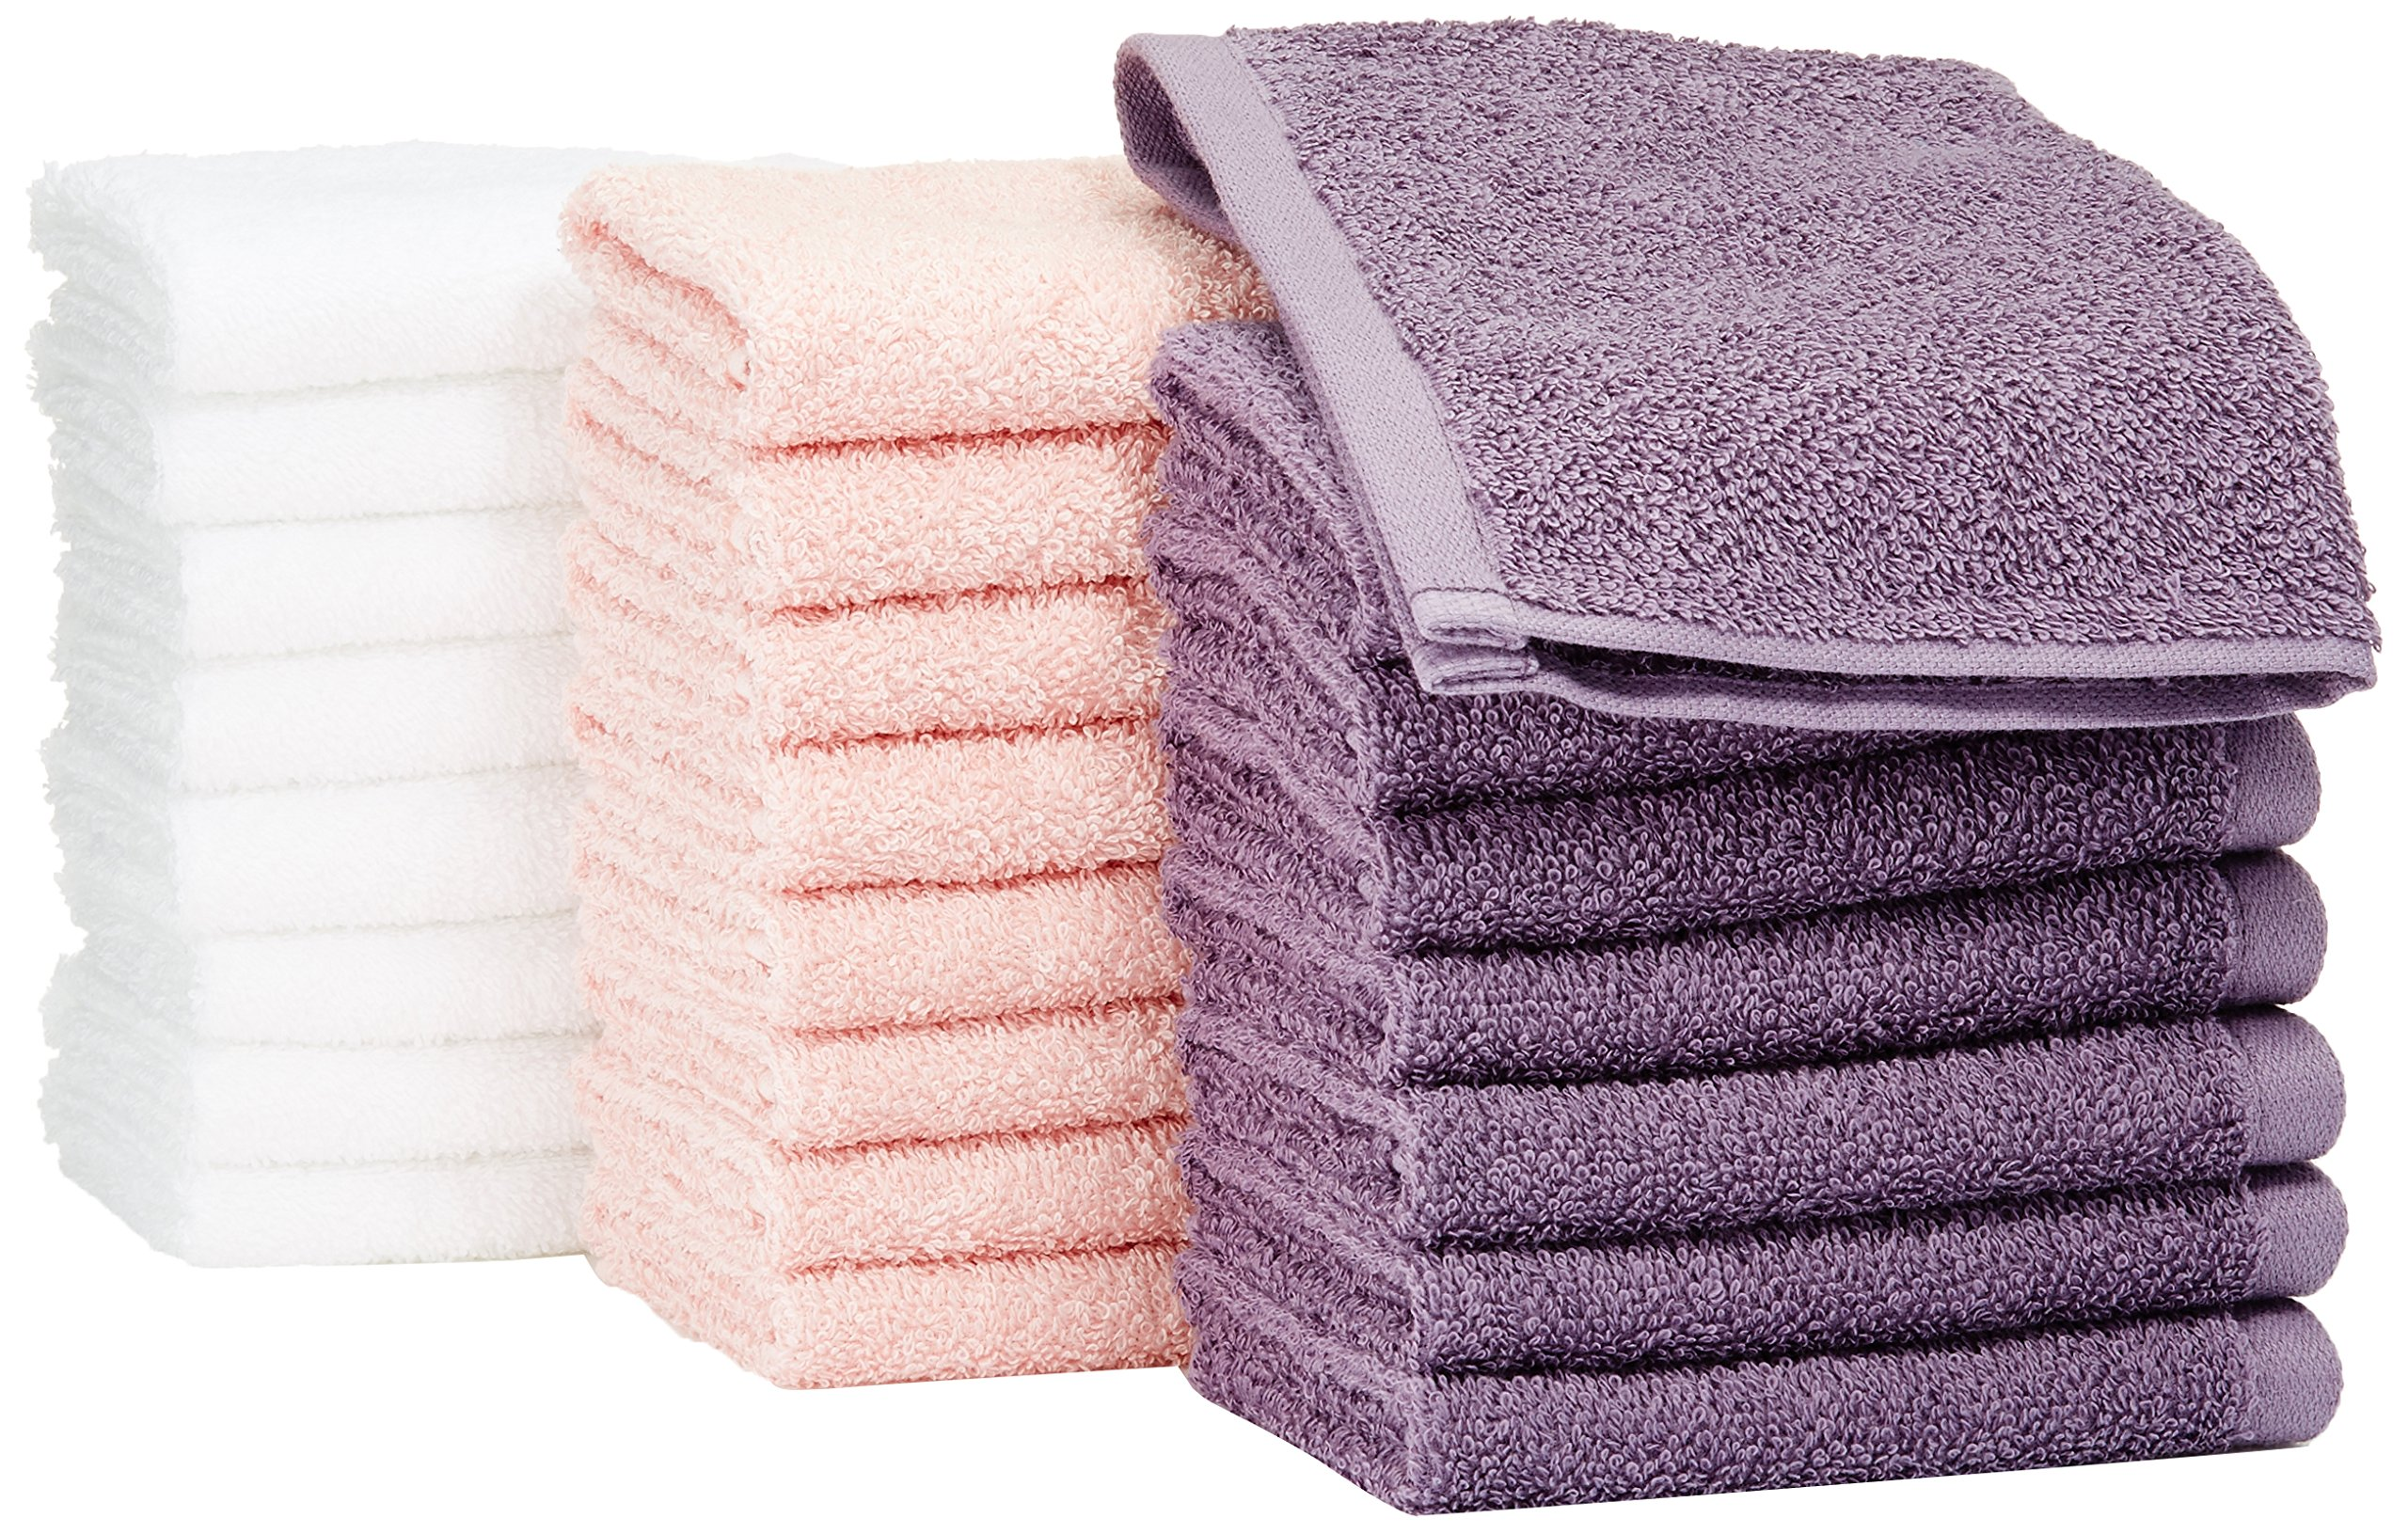 AmazonBasics Washcloth - Pack of 24 (Multi-color: Petal Pink, Lavender, White)